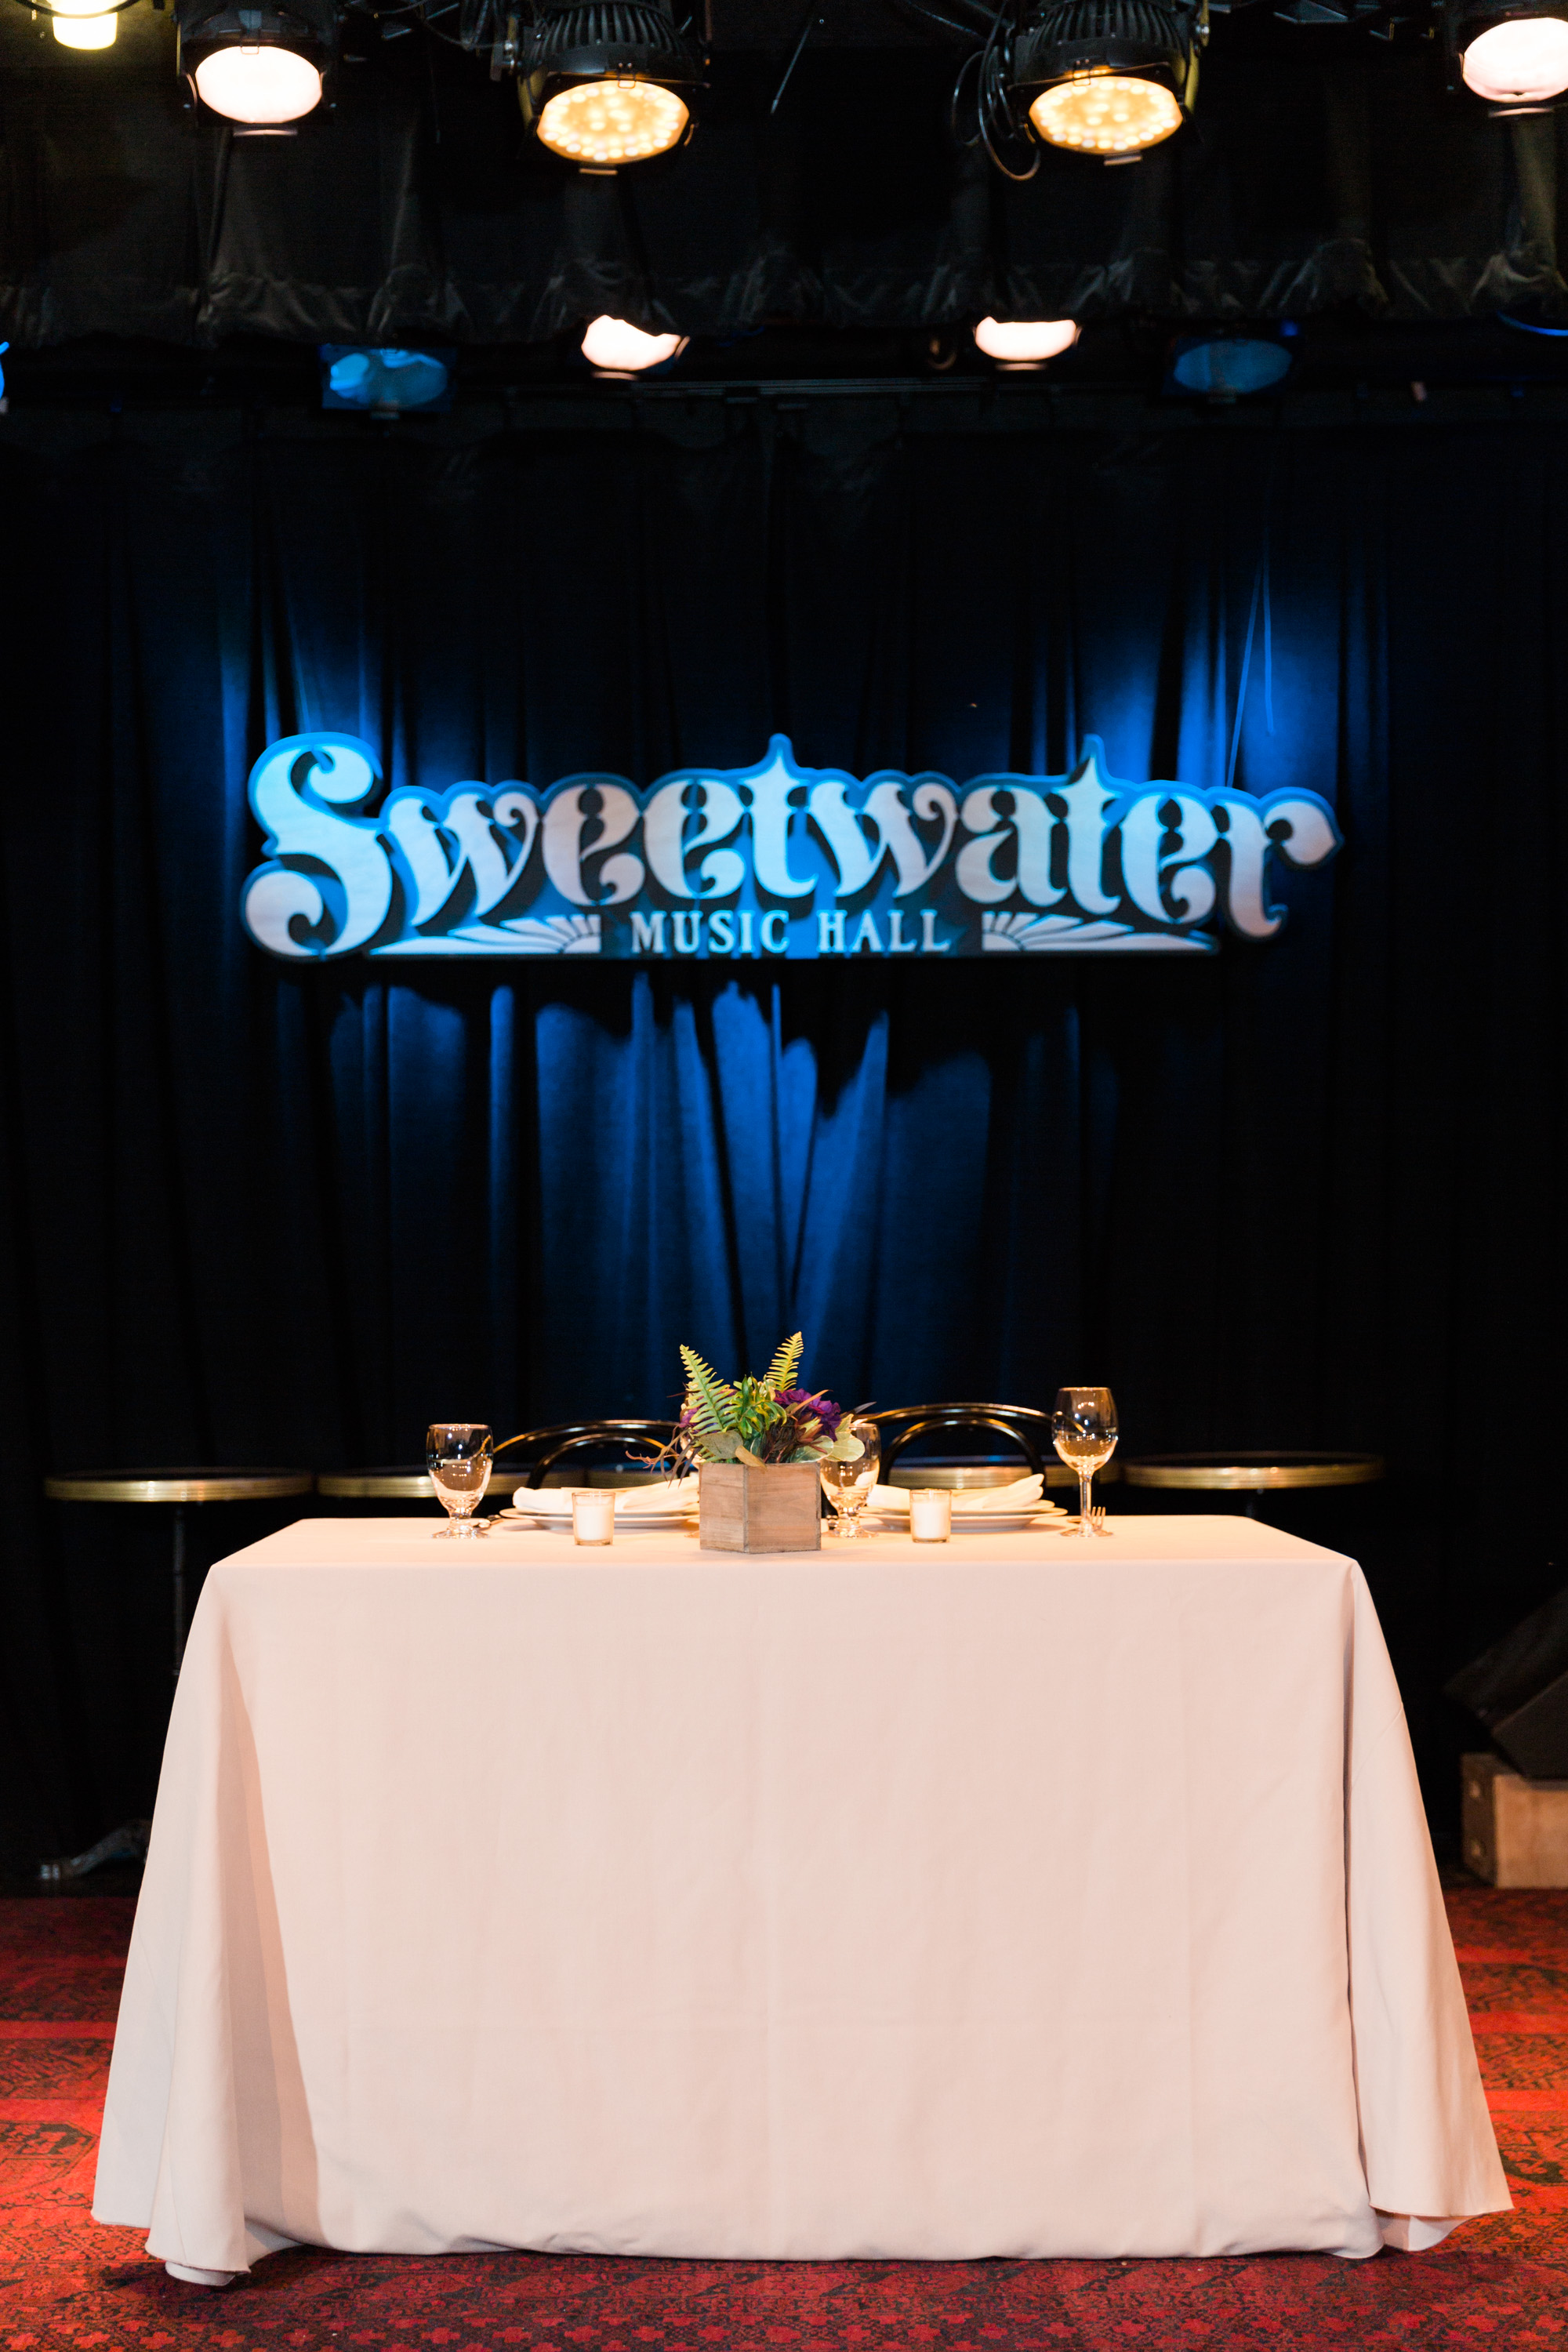 Jazzy, travel themed reception held at the Sweetwater Music Hall in Mill Valley